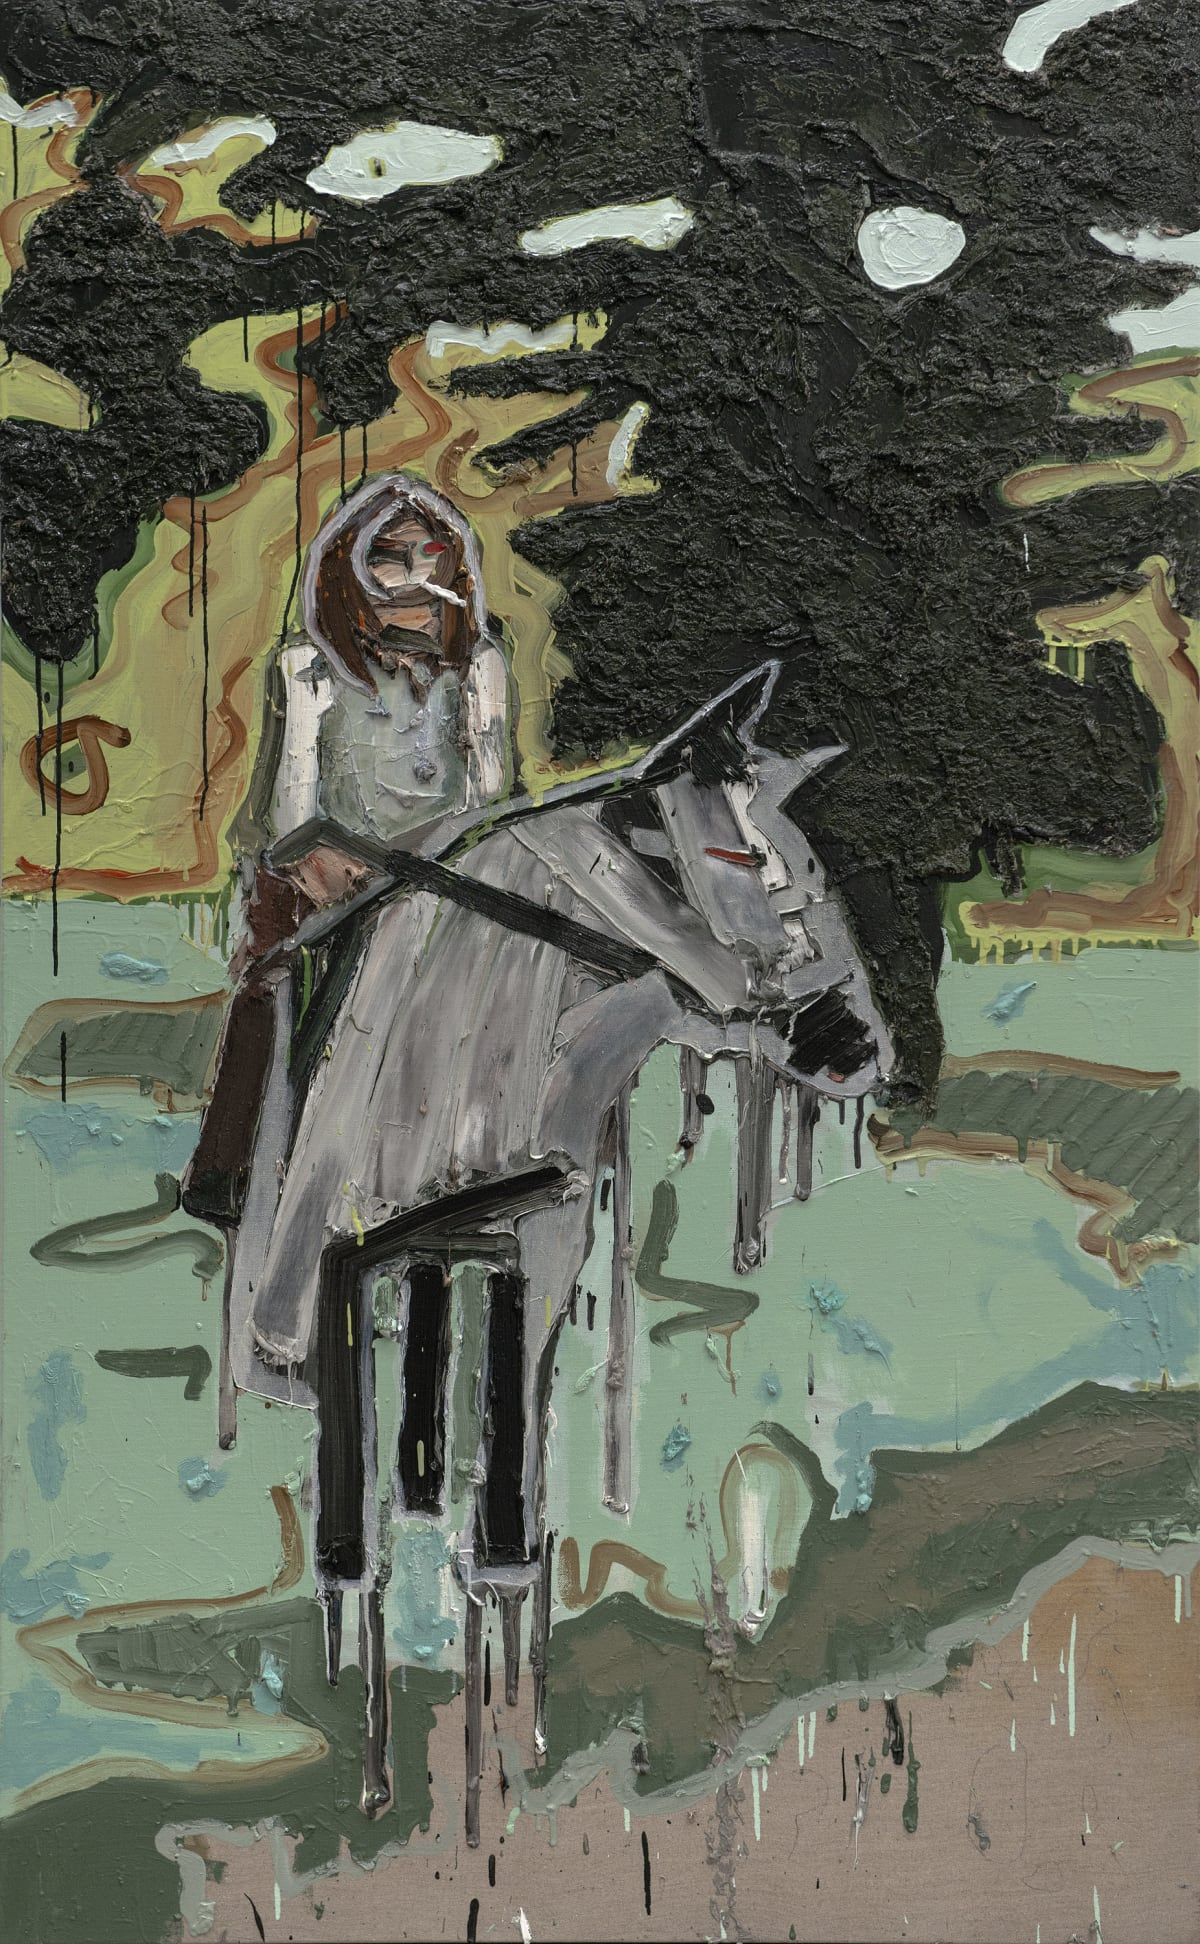 Toby Raine Ozzy Appearing From British Woodlands on Satanic Horse, Smoking A Huge Joint, 2018 Oil on linen 182 x 101.5 cm 71 5/8 x 40 in